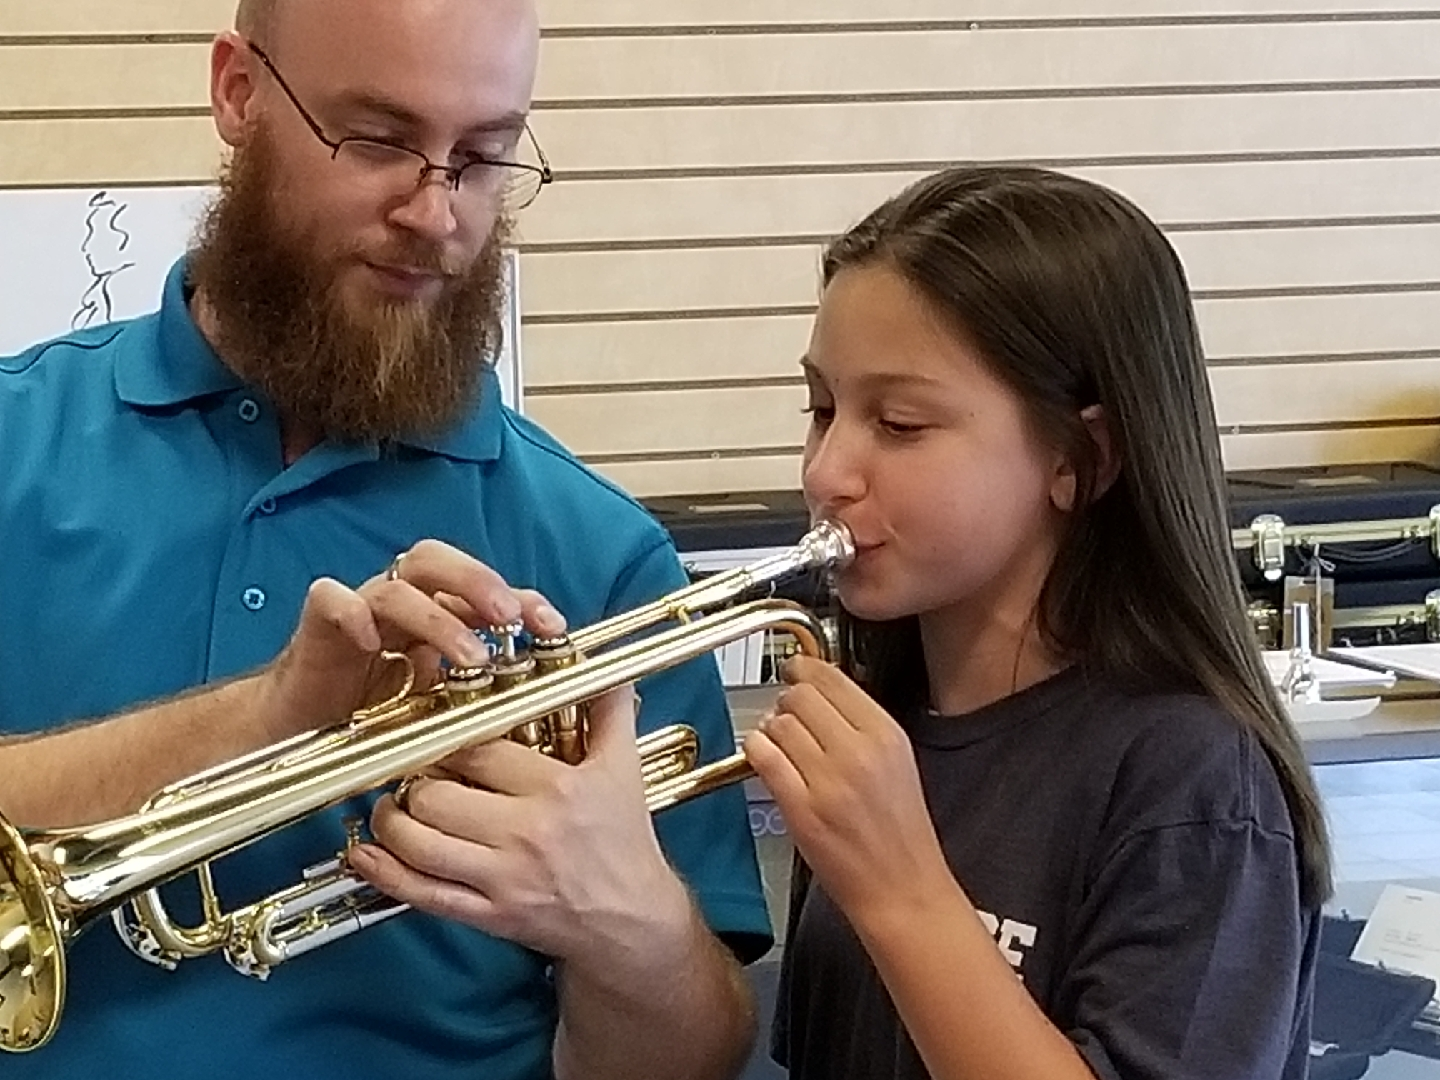 photo of student mouthpiece testing the trumpet